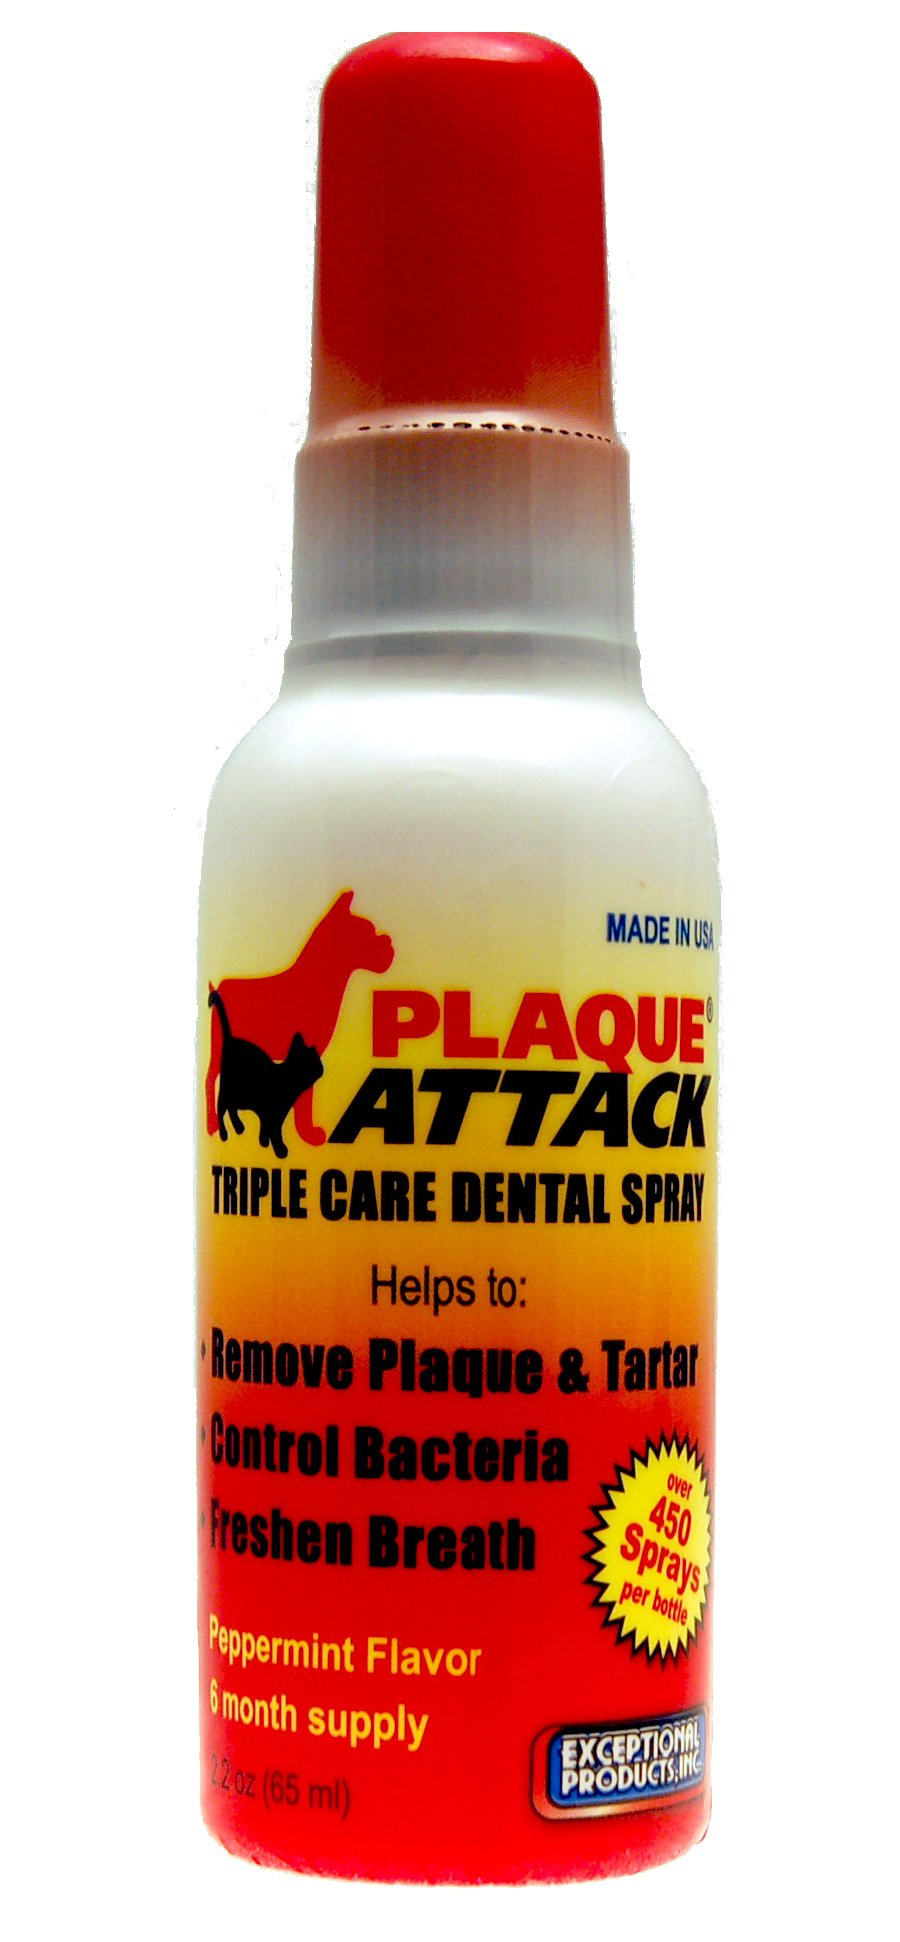 Plaque Attack Pet Dental Spray Peppermint Flavor 2.2 fl oz - 6 Month Supply